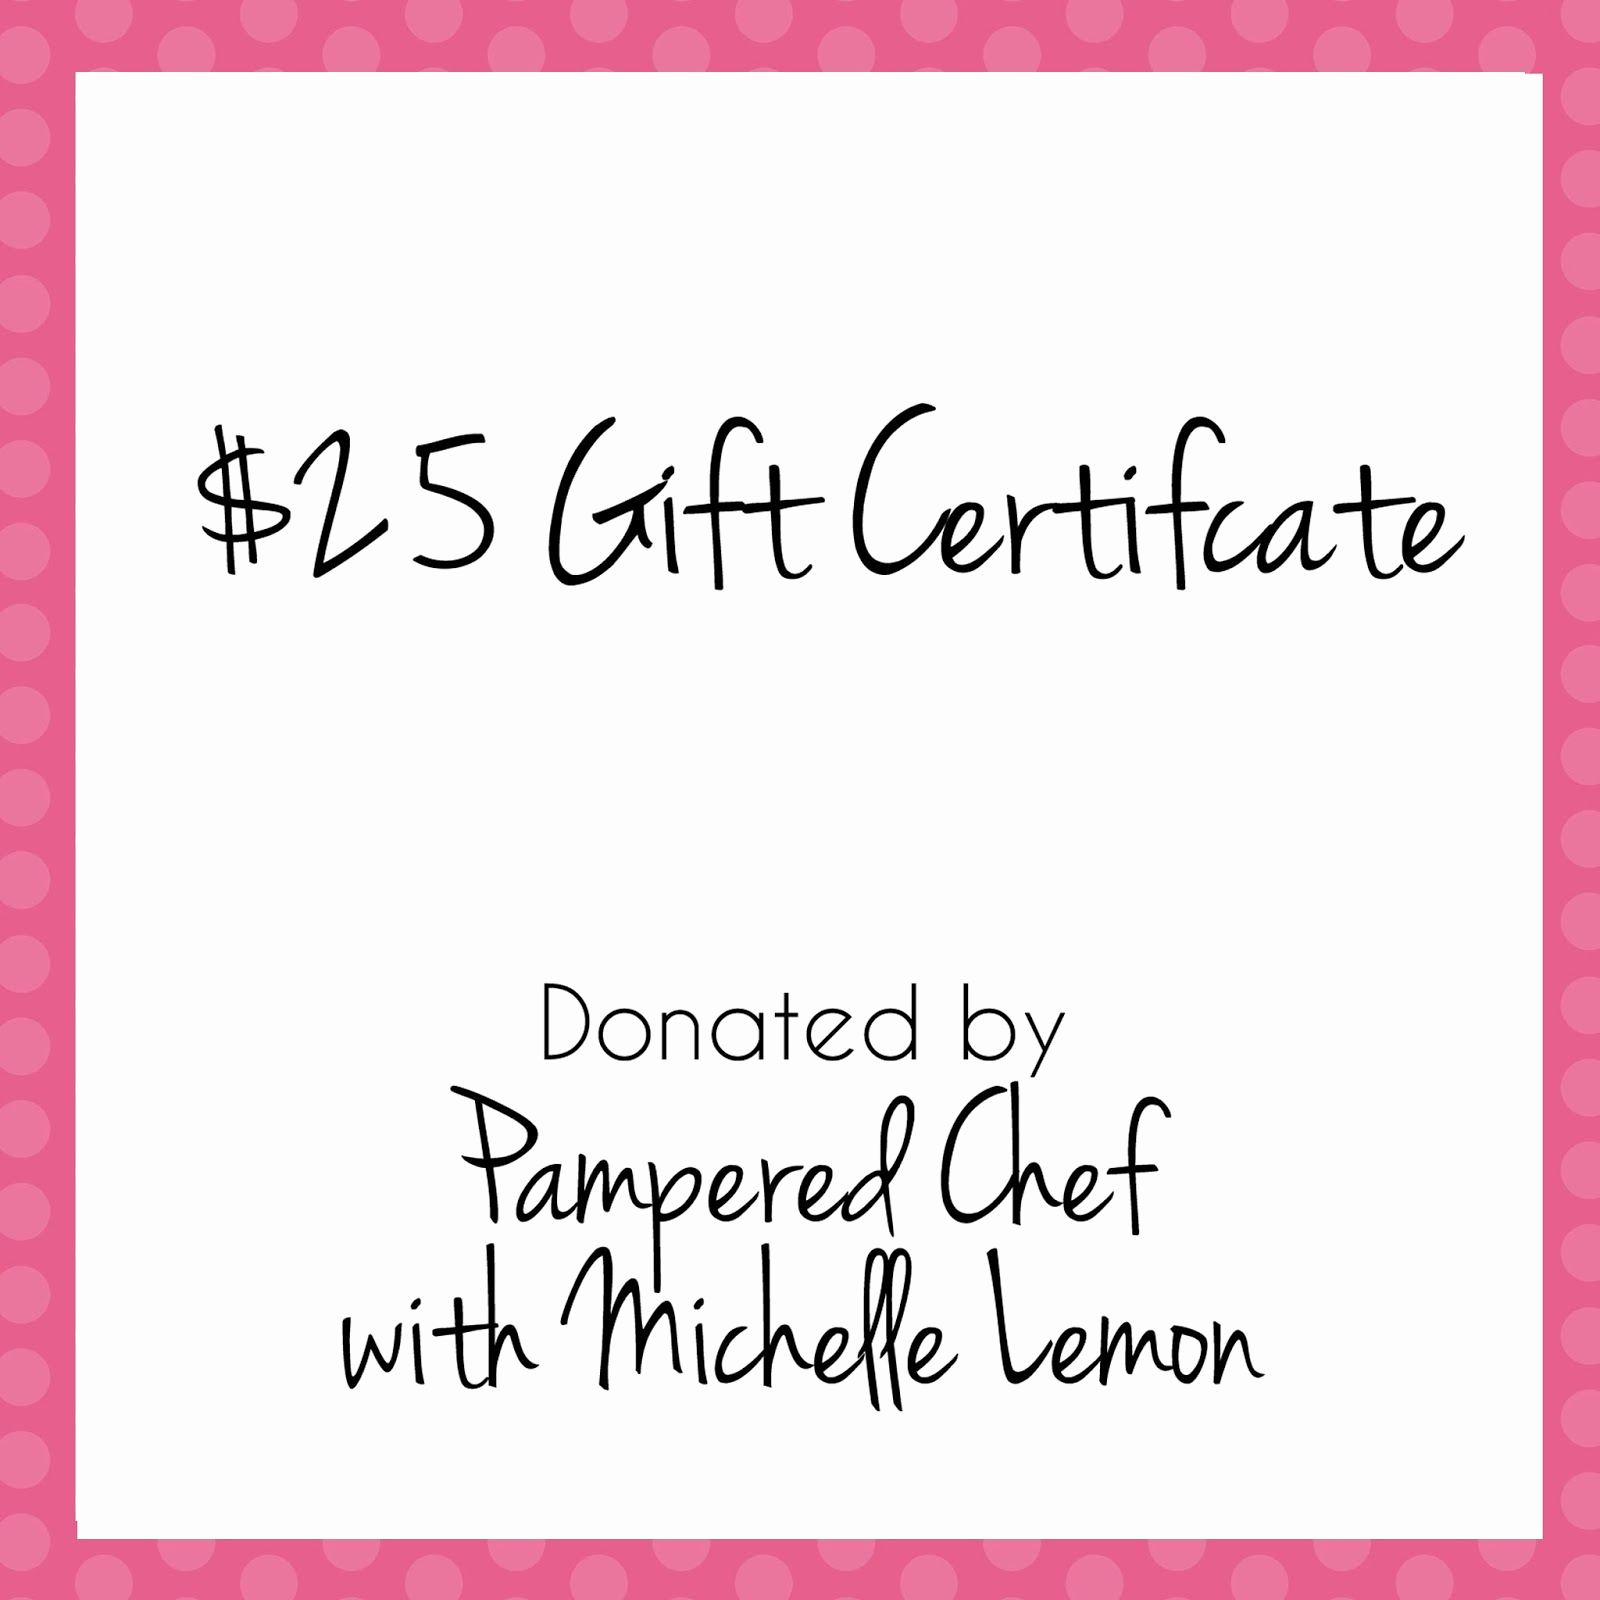 Pampered Chef Invitation Template Beautiful 29 Of Pampered Chef Gift Certificate Template